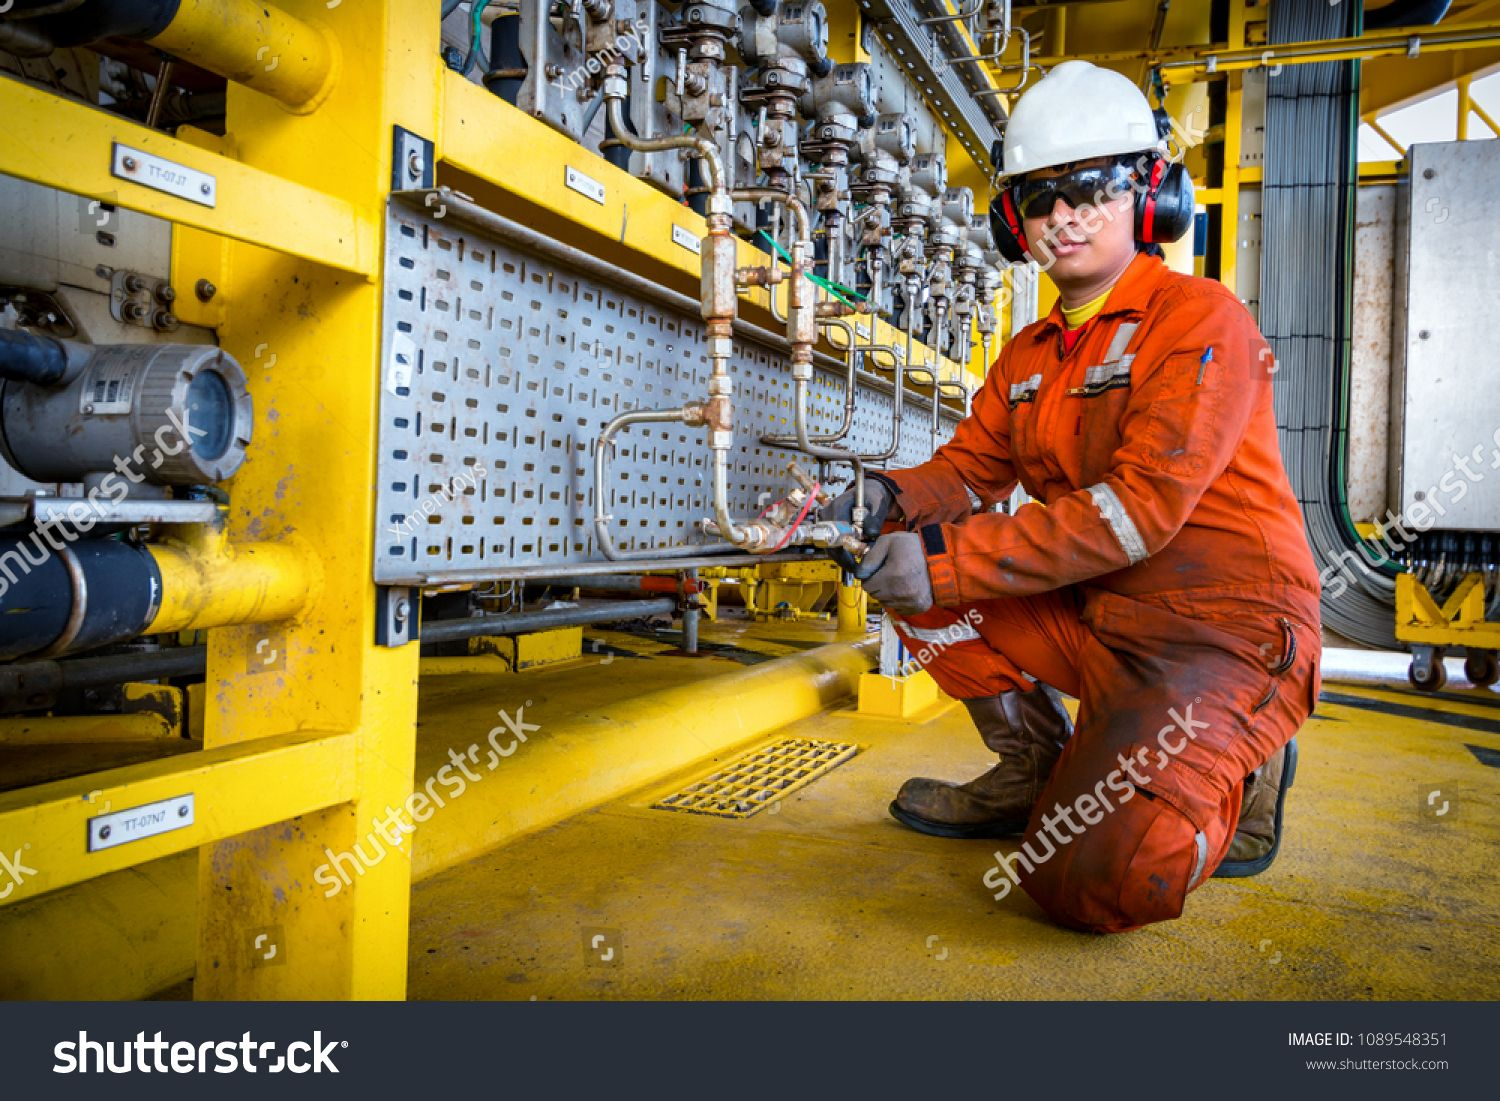 Technicain,Technician during work in process oil and gas